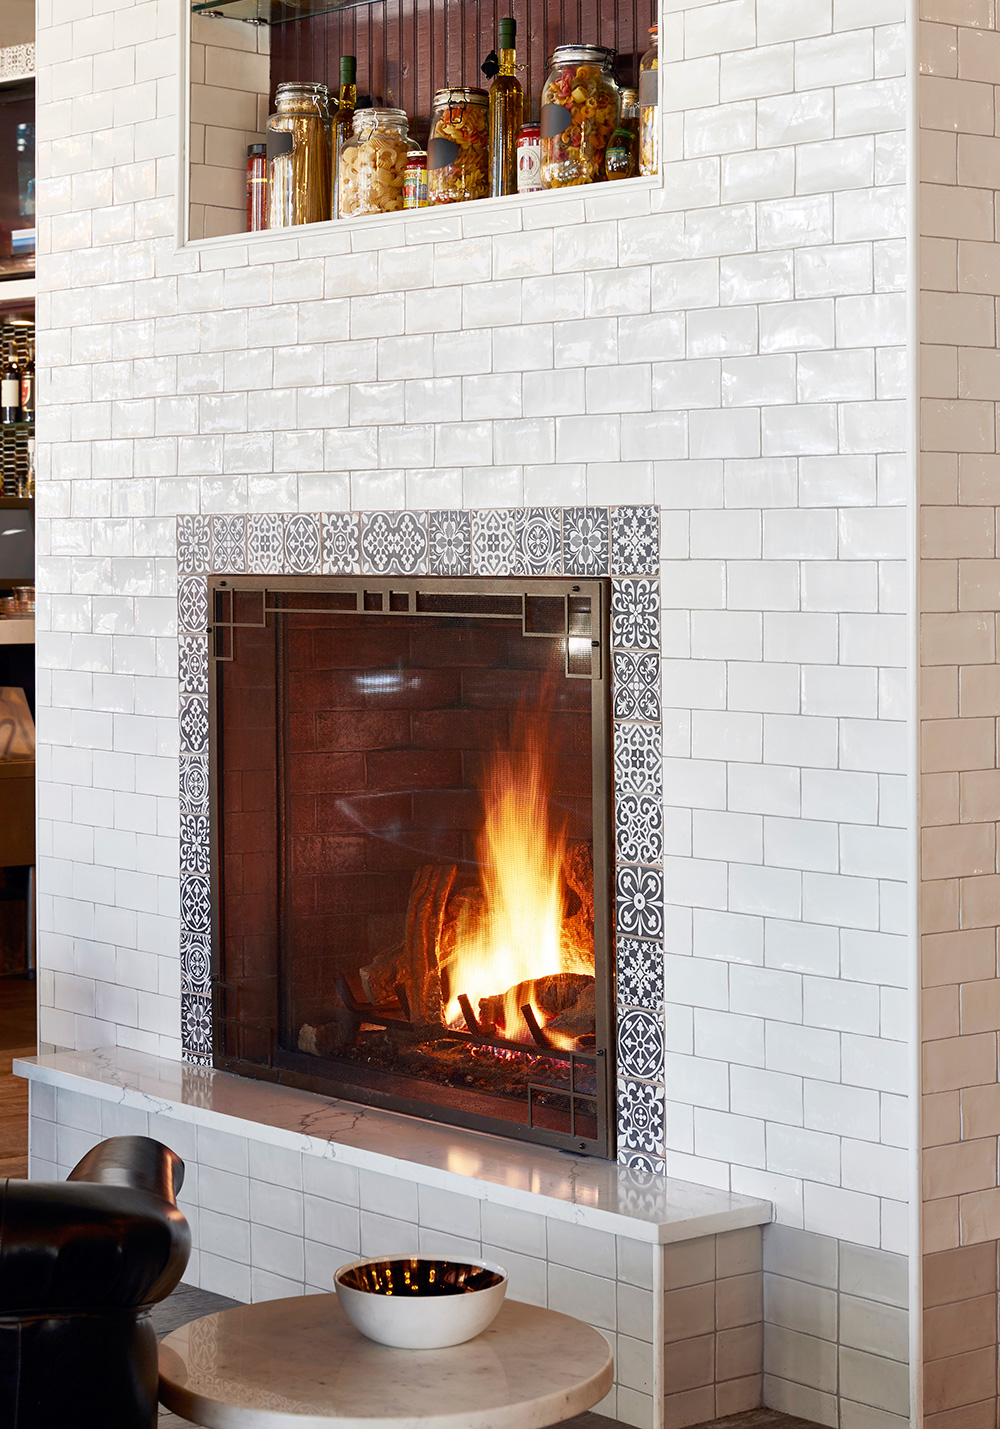 EAU-Allora-Kitchen-fireplace.jpg